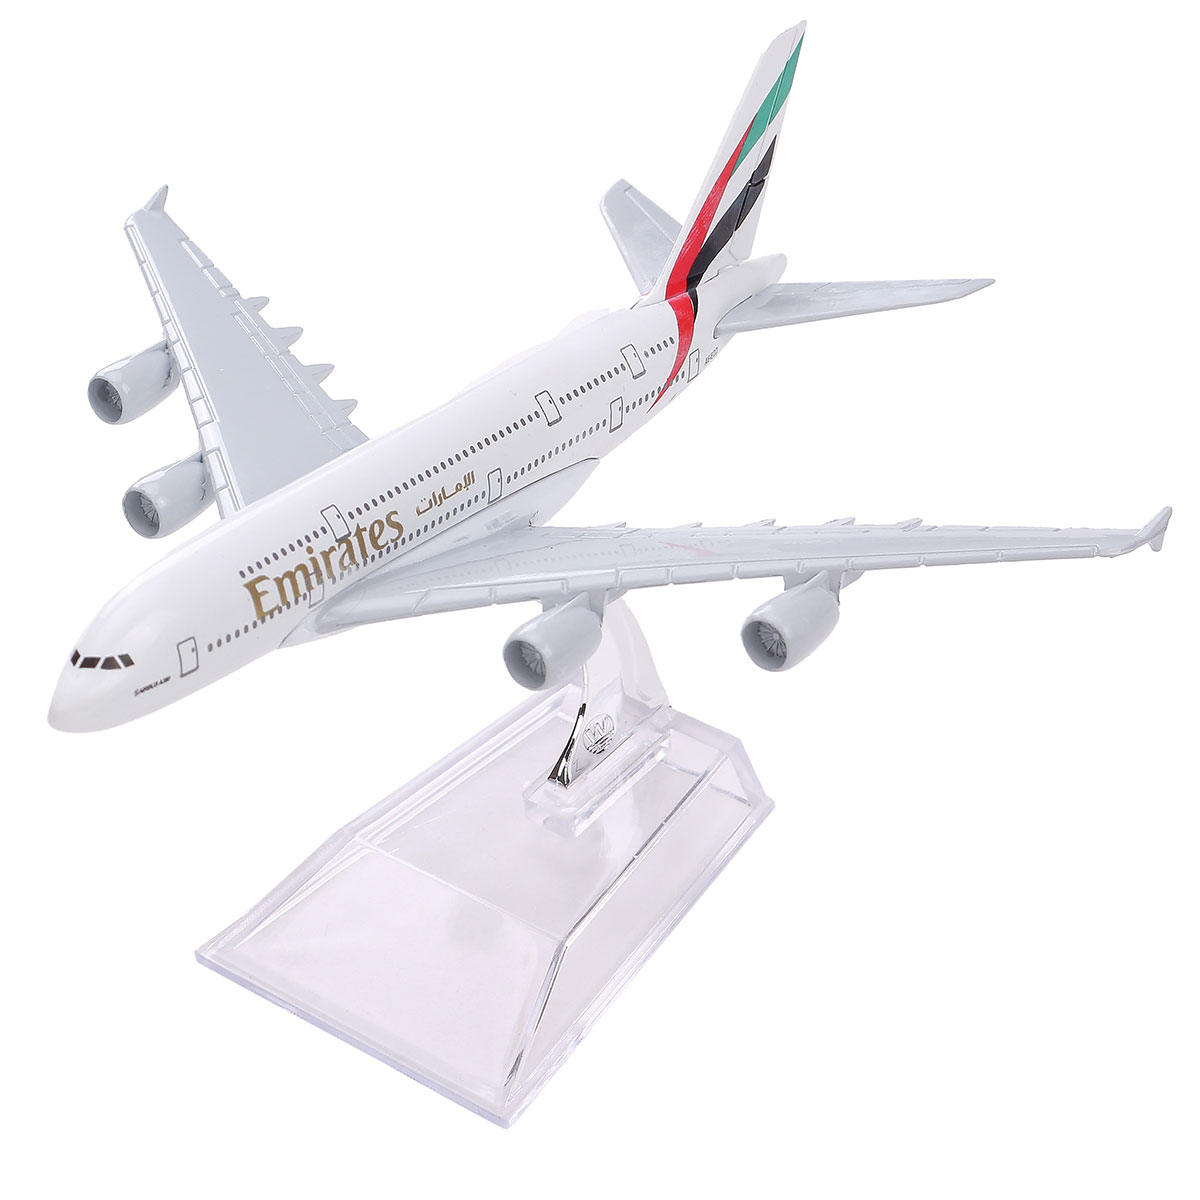 New Airbus380 Emirates Airlines A-380 Aircraft Aeroplan 16cm High Simulation Diecast Model United Arab Emirates A380